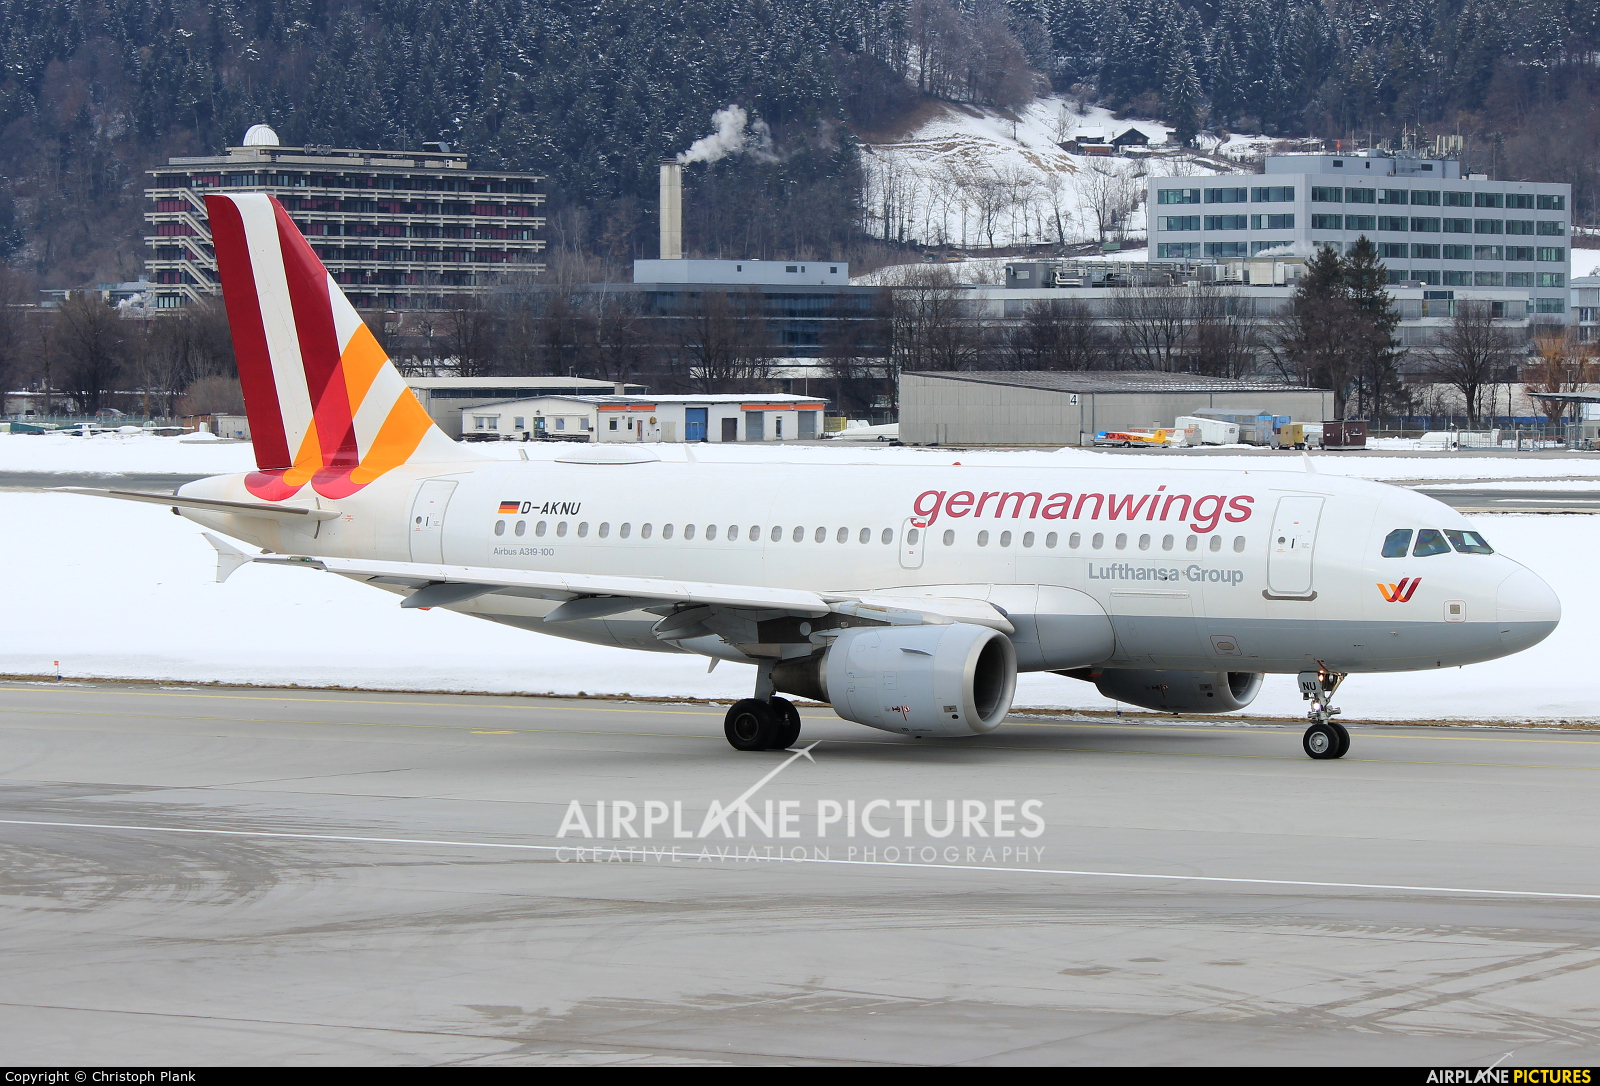 Germanwings D-AKNU aircraft at Innsbruck